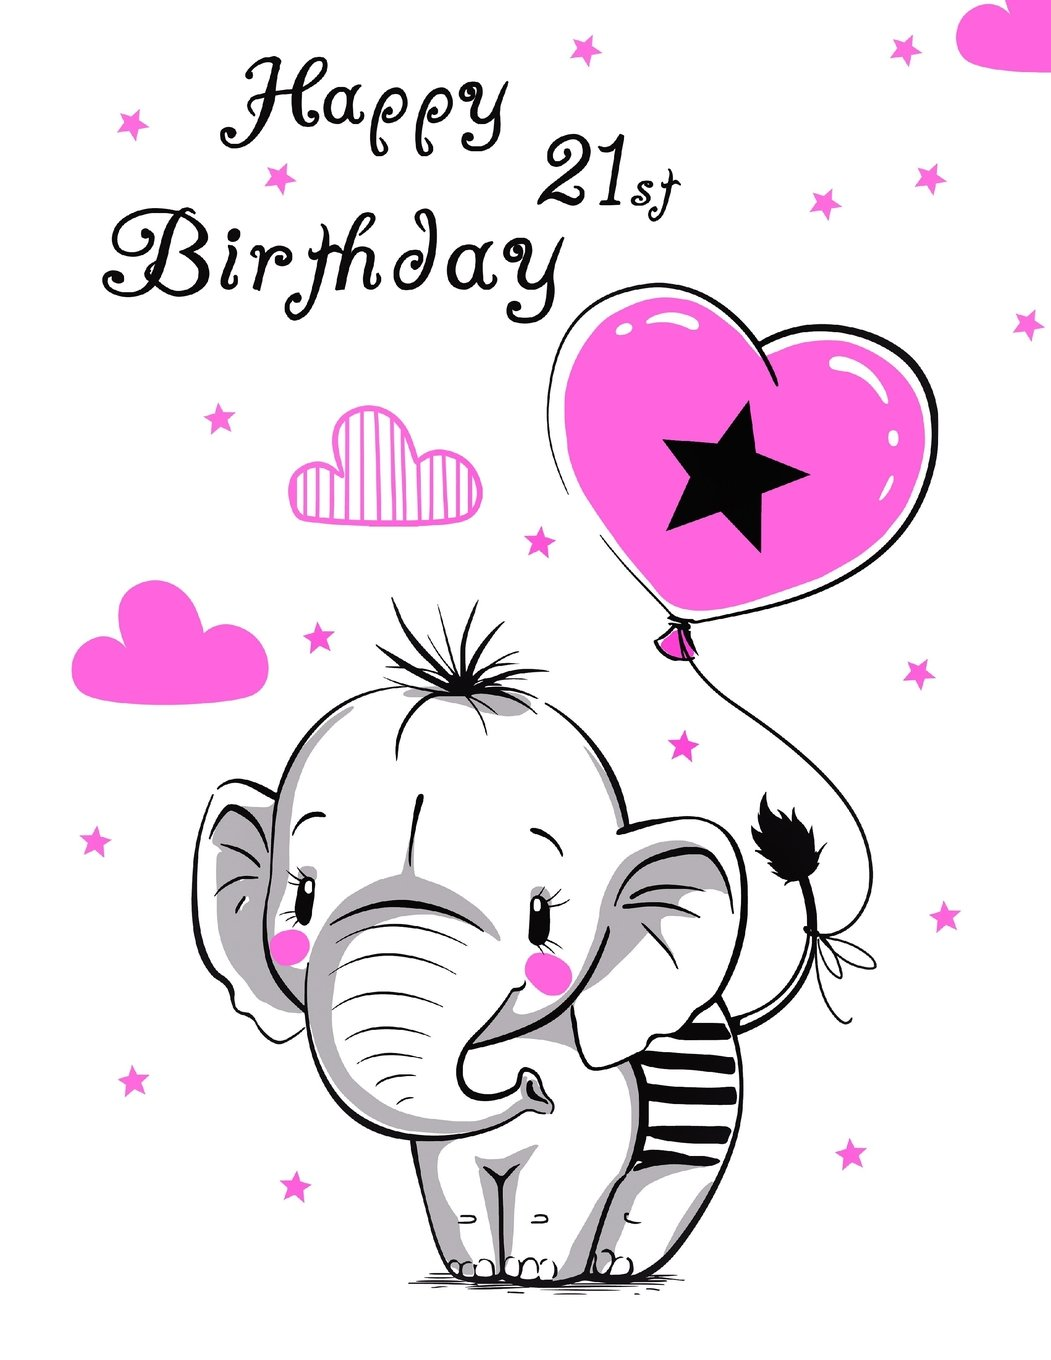 Happy 21st Birthday Notebook Journal Diary 105 Lined Pages Cute